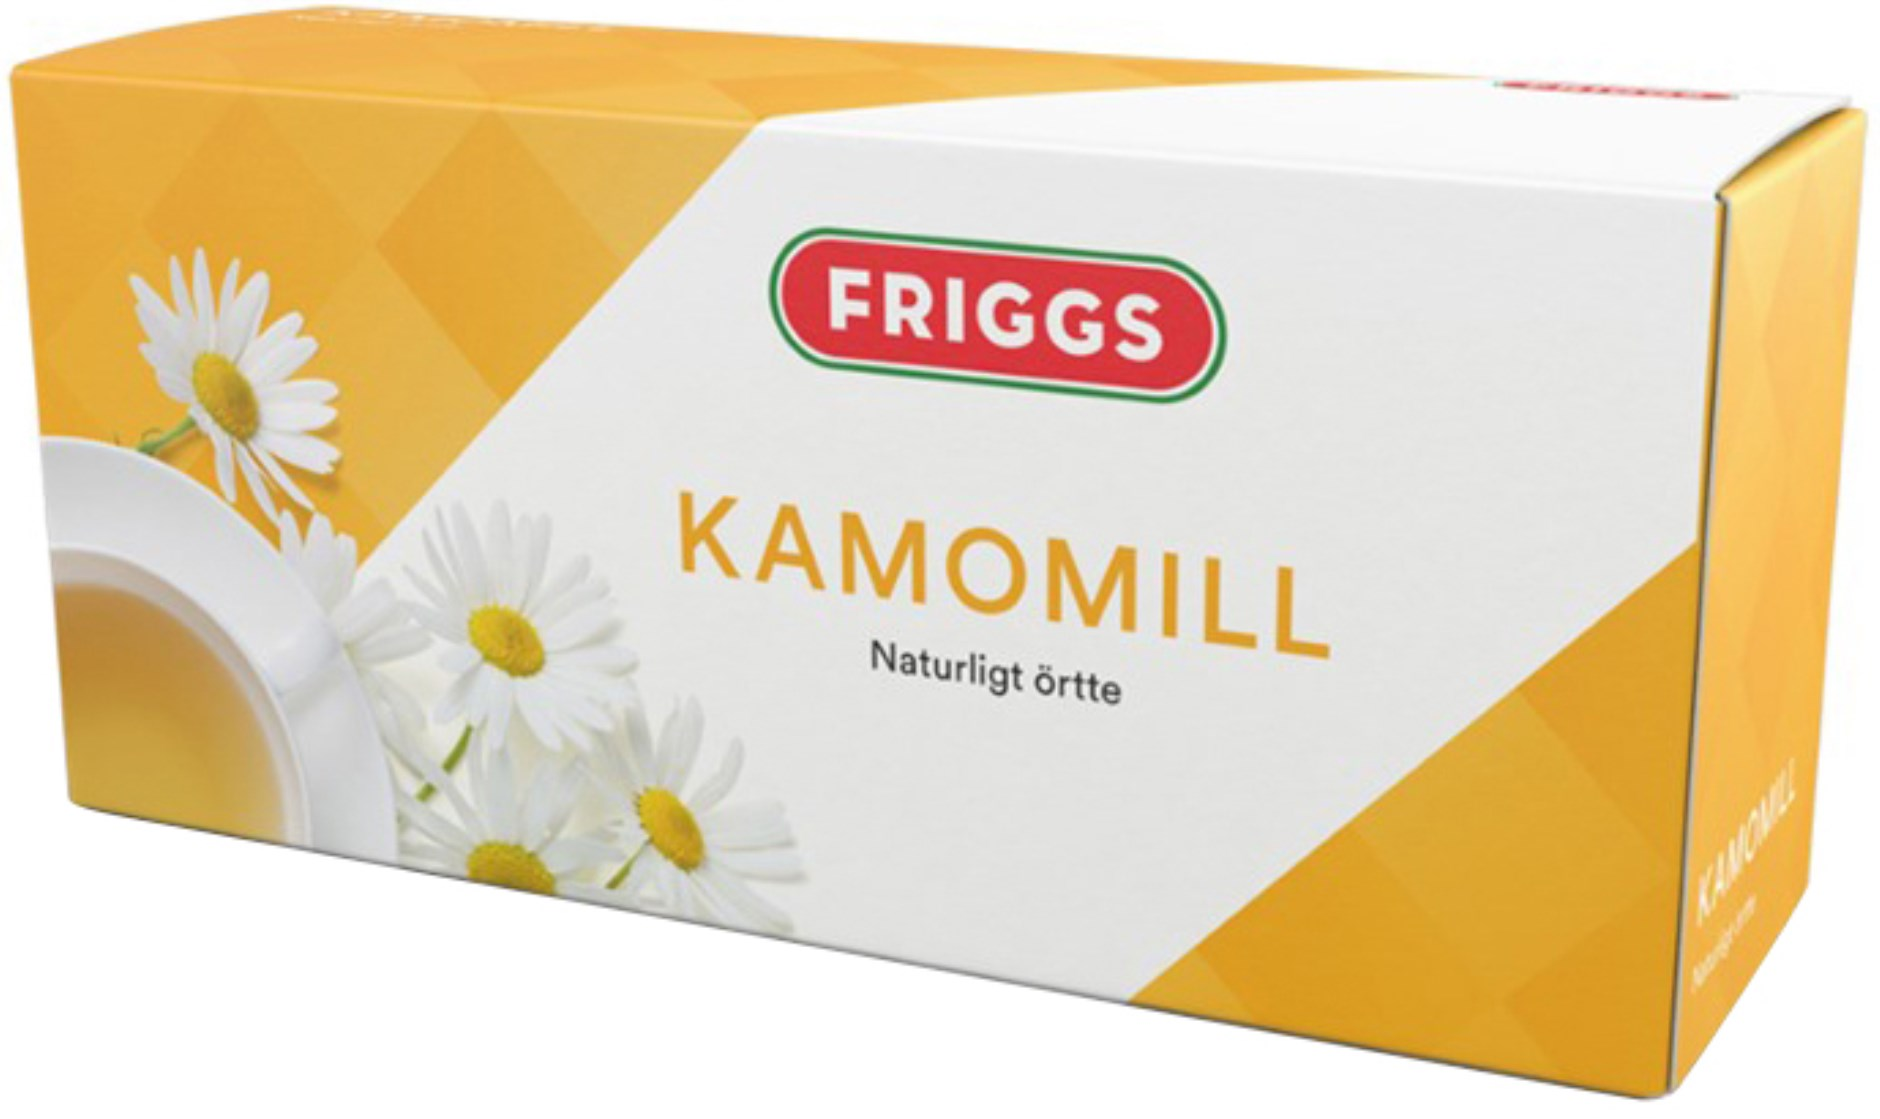 Friggs Örtte Kamomill,  - Friggs